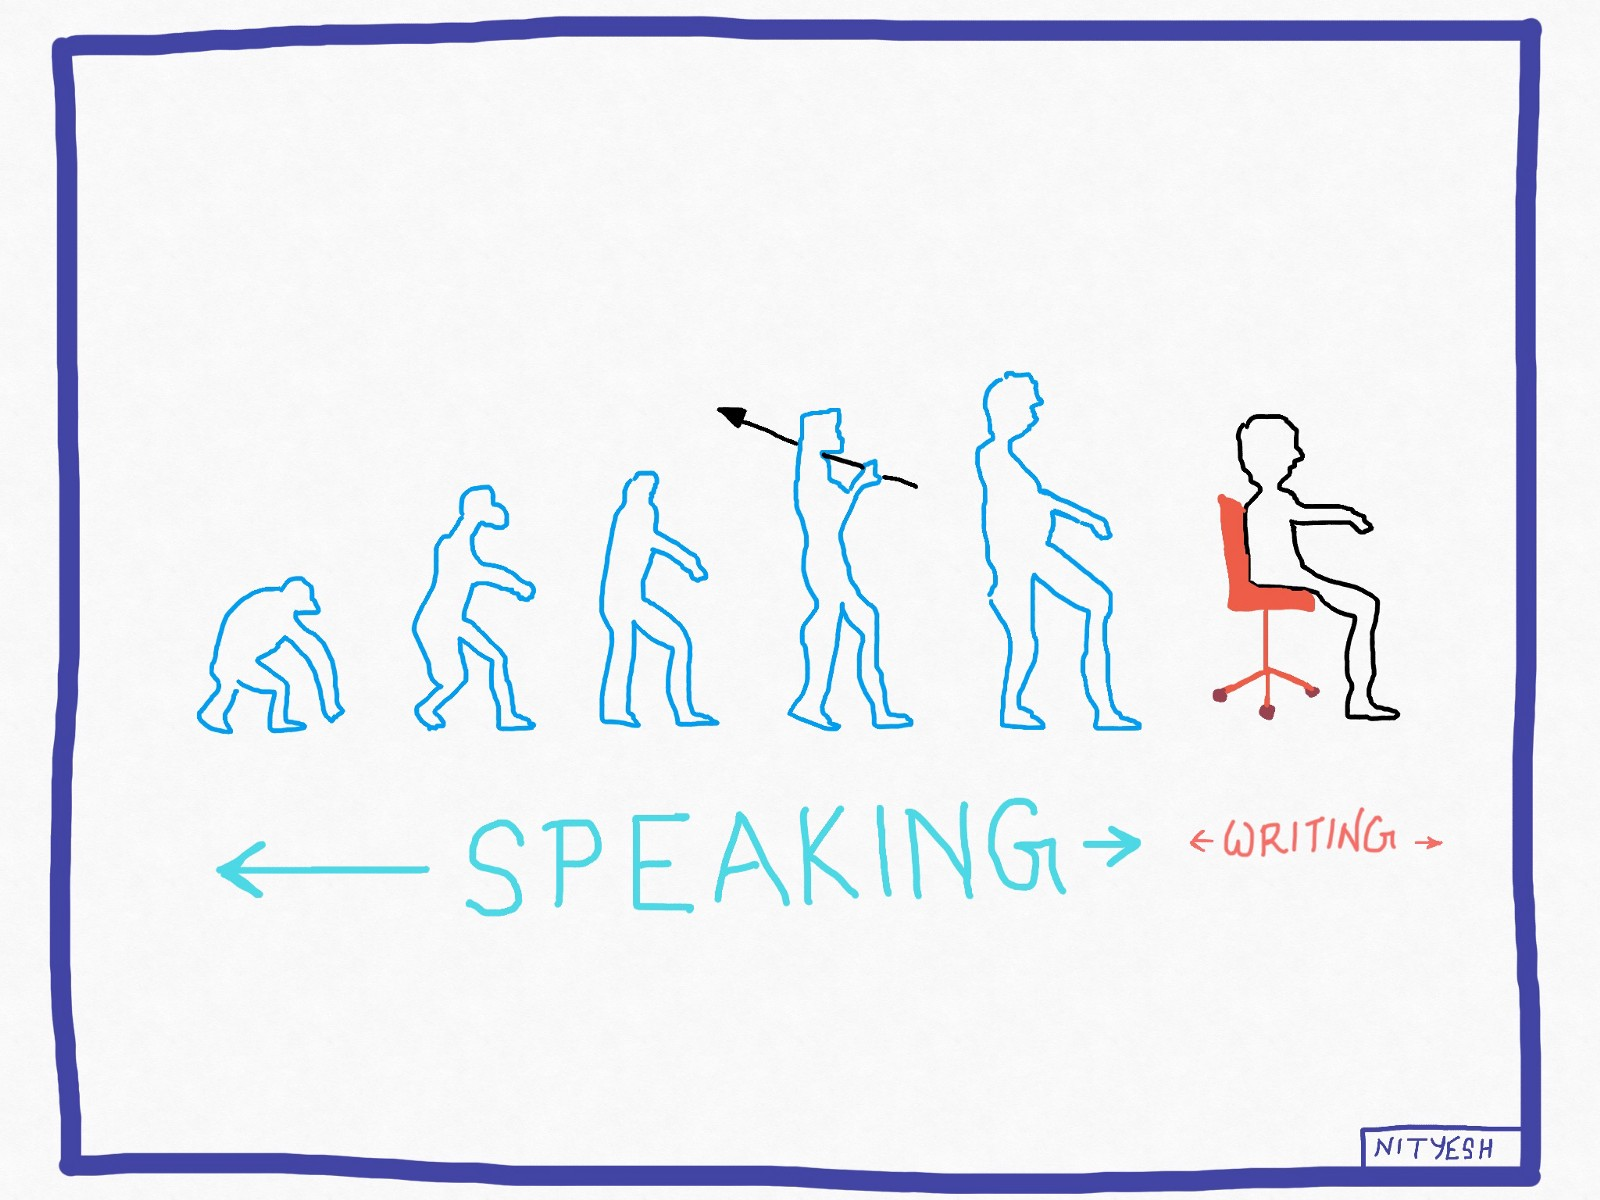 Evolution of speaking to writing